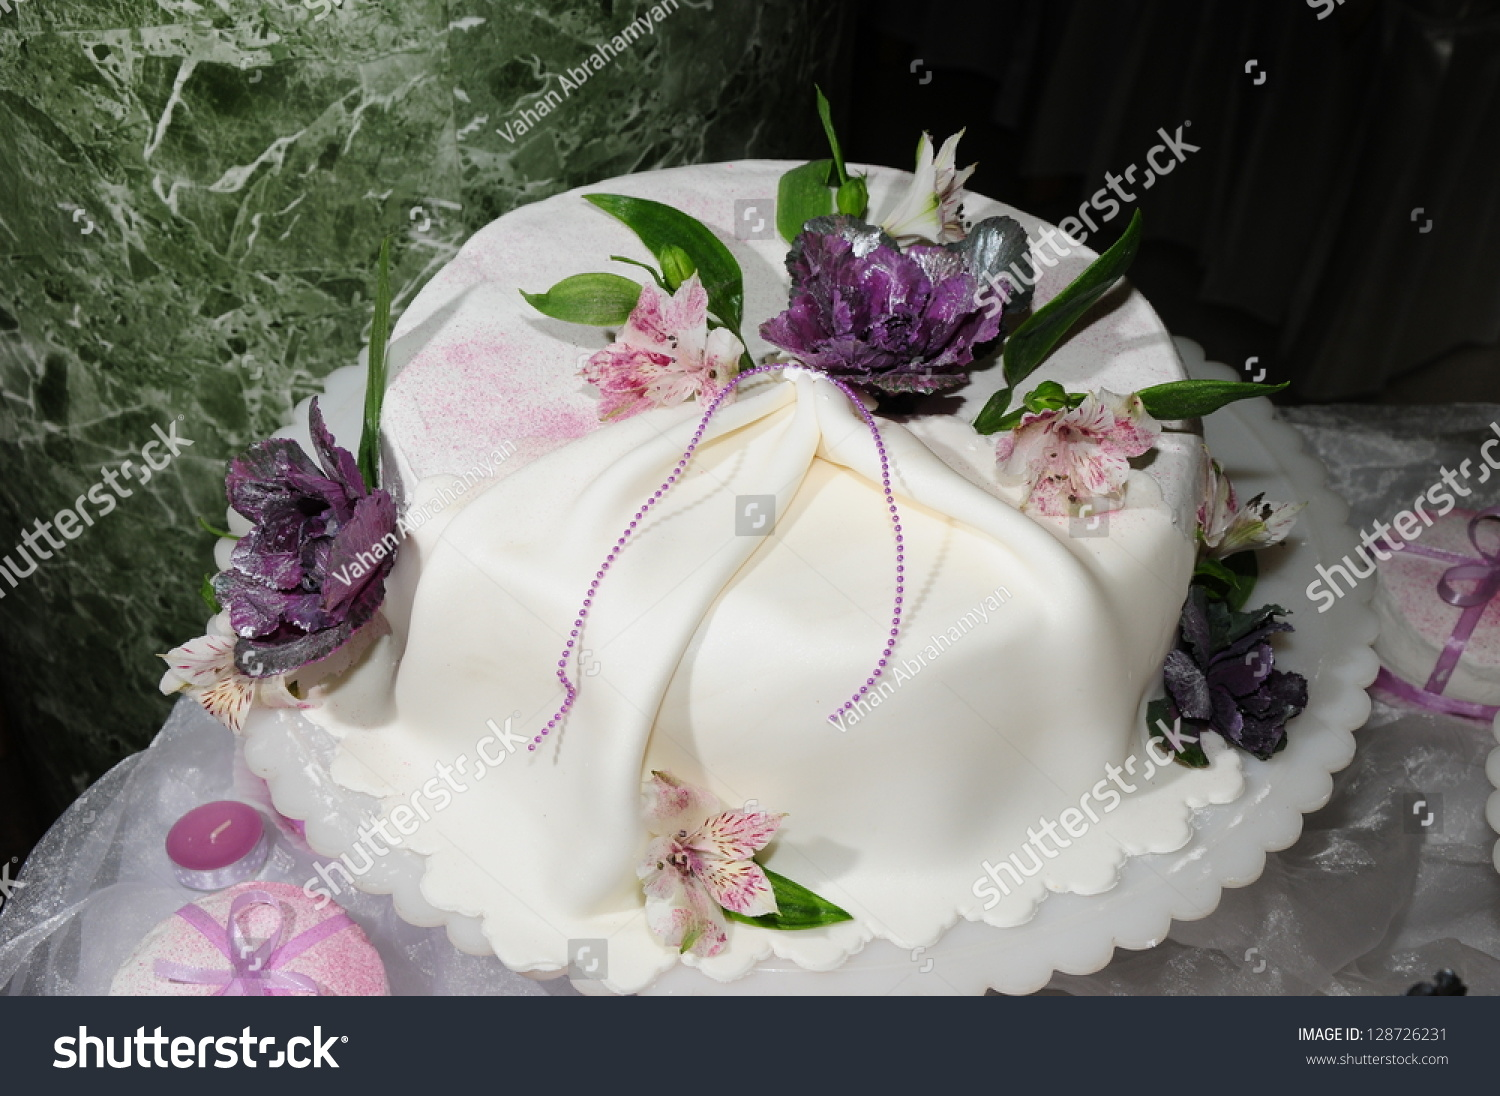 Wedding Cake Decorated With Fresh Flowers Stock Photo 128726231 Shutterstock